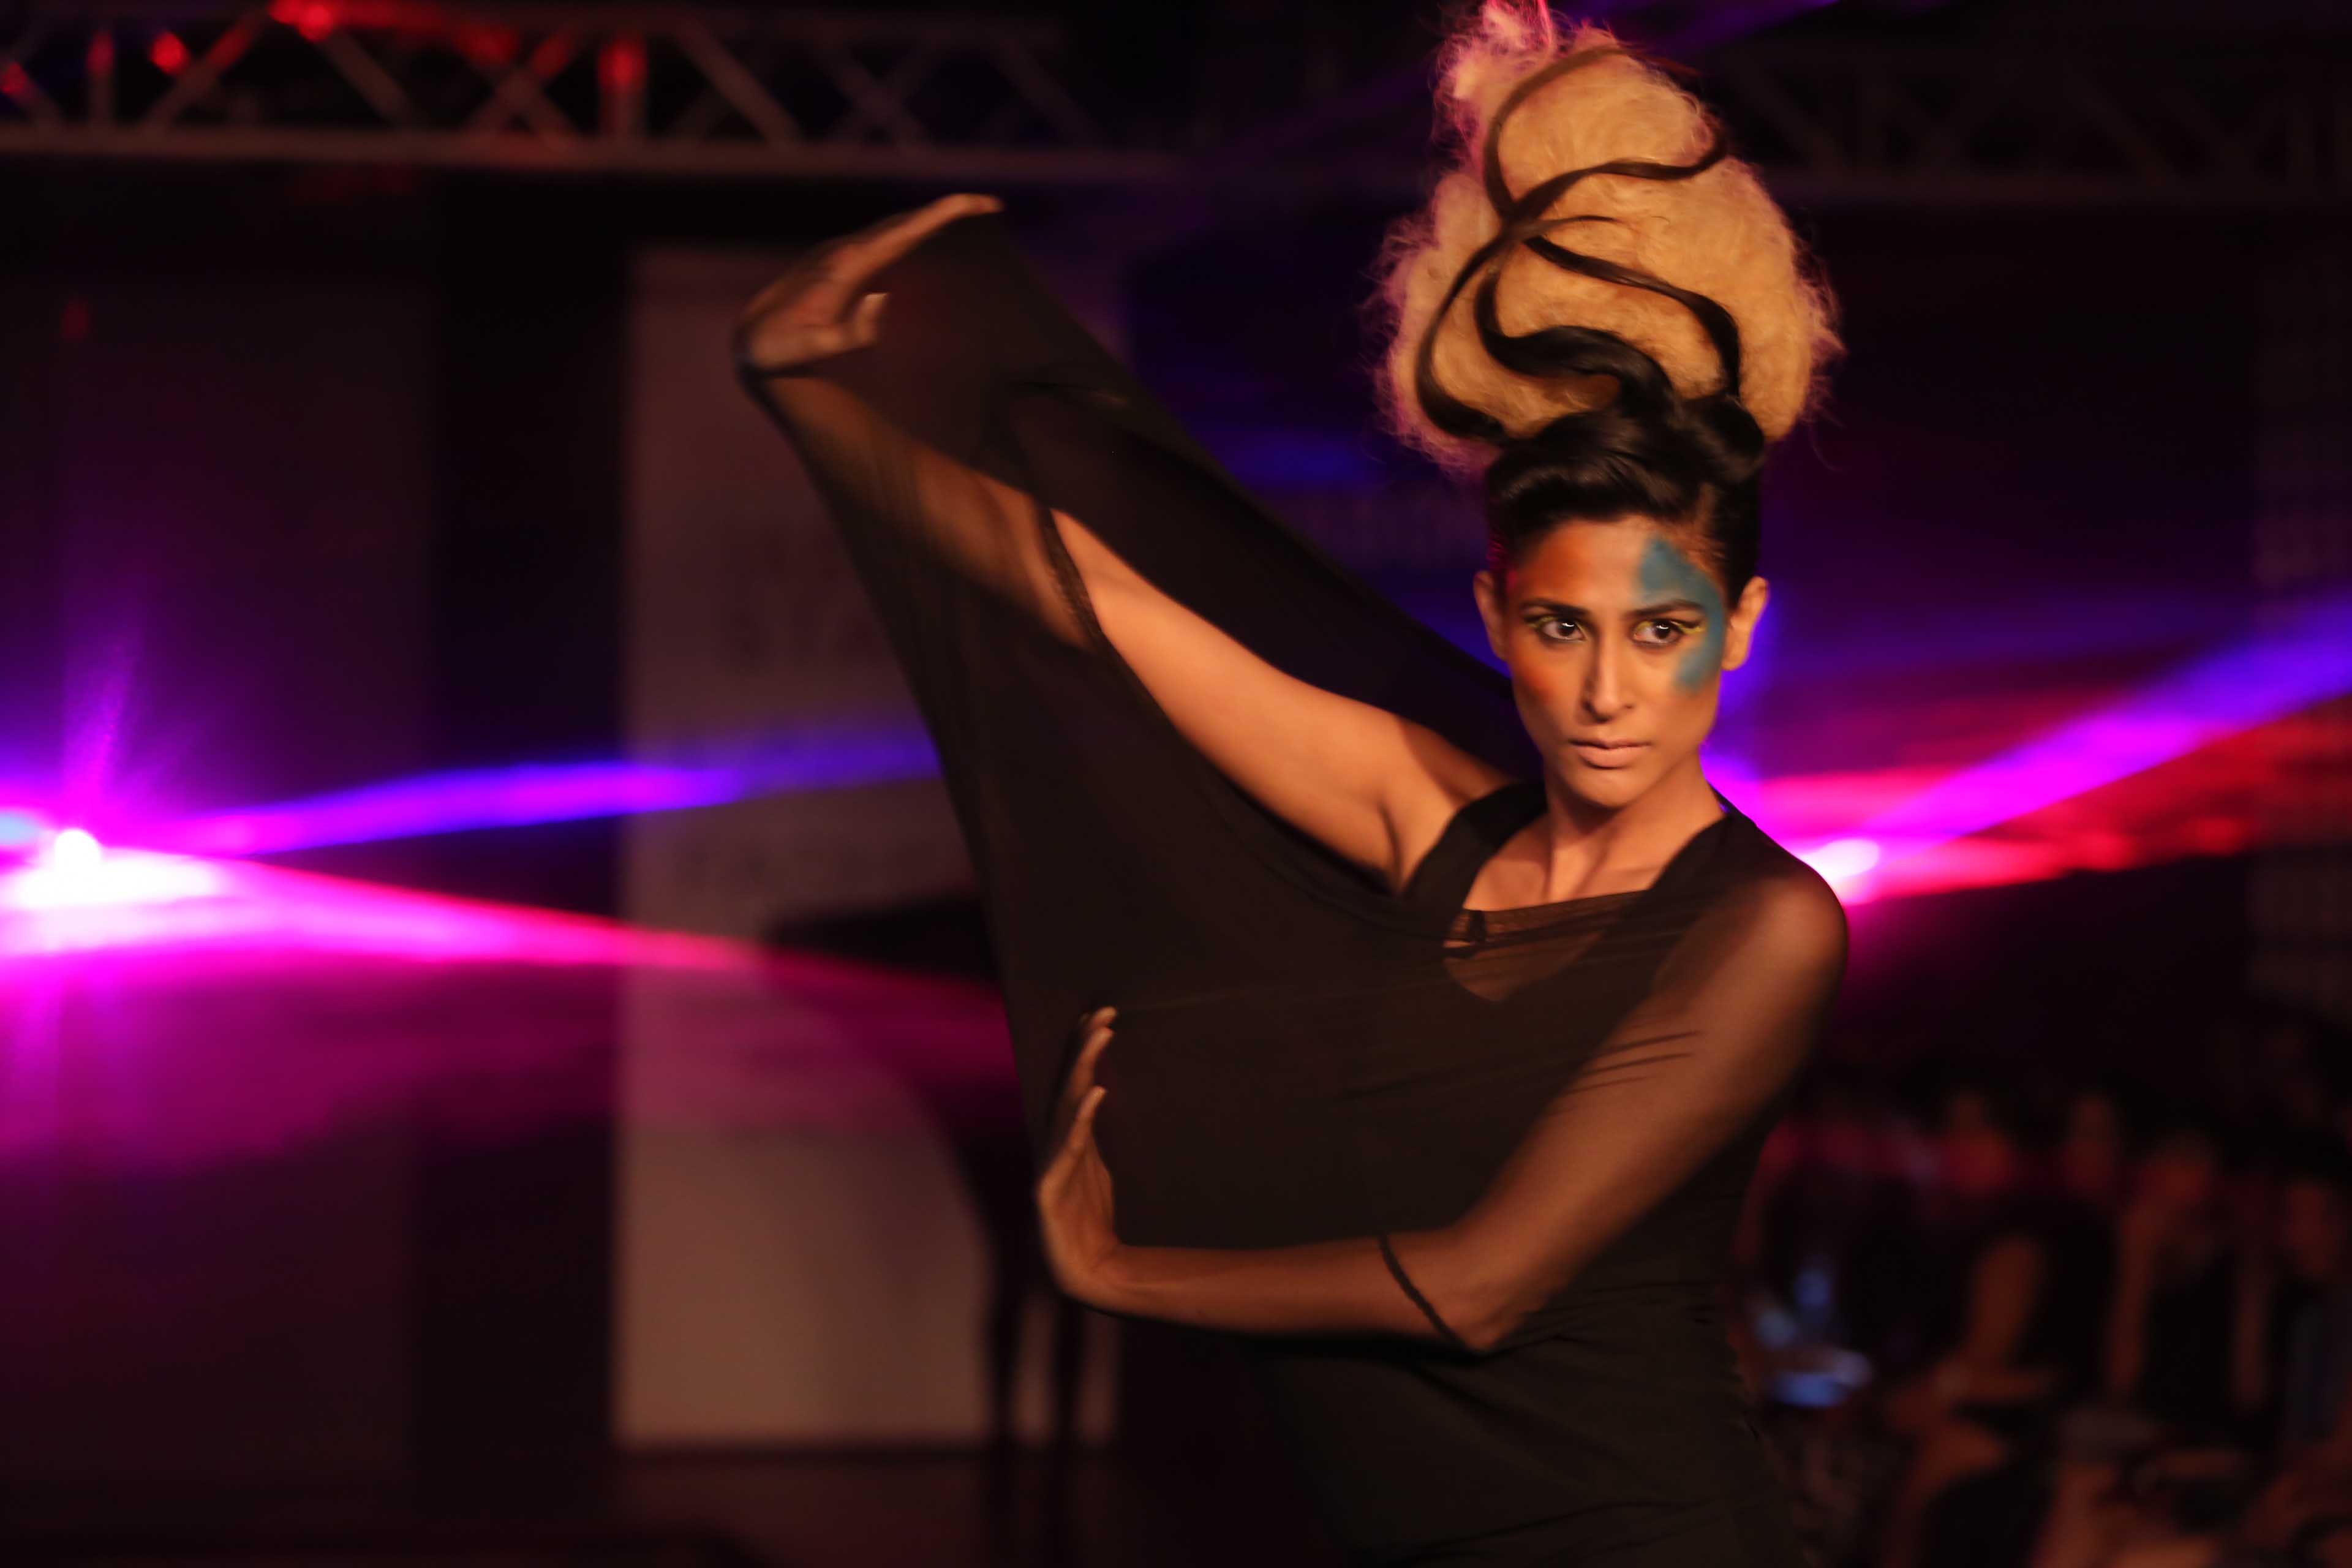 B Styled Hair Collection: Lakmé Salon Presented 'Show Stopping Hair' Collection